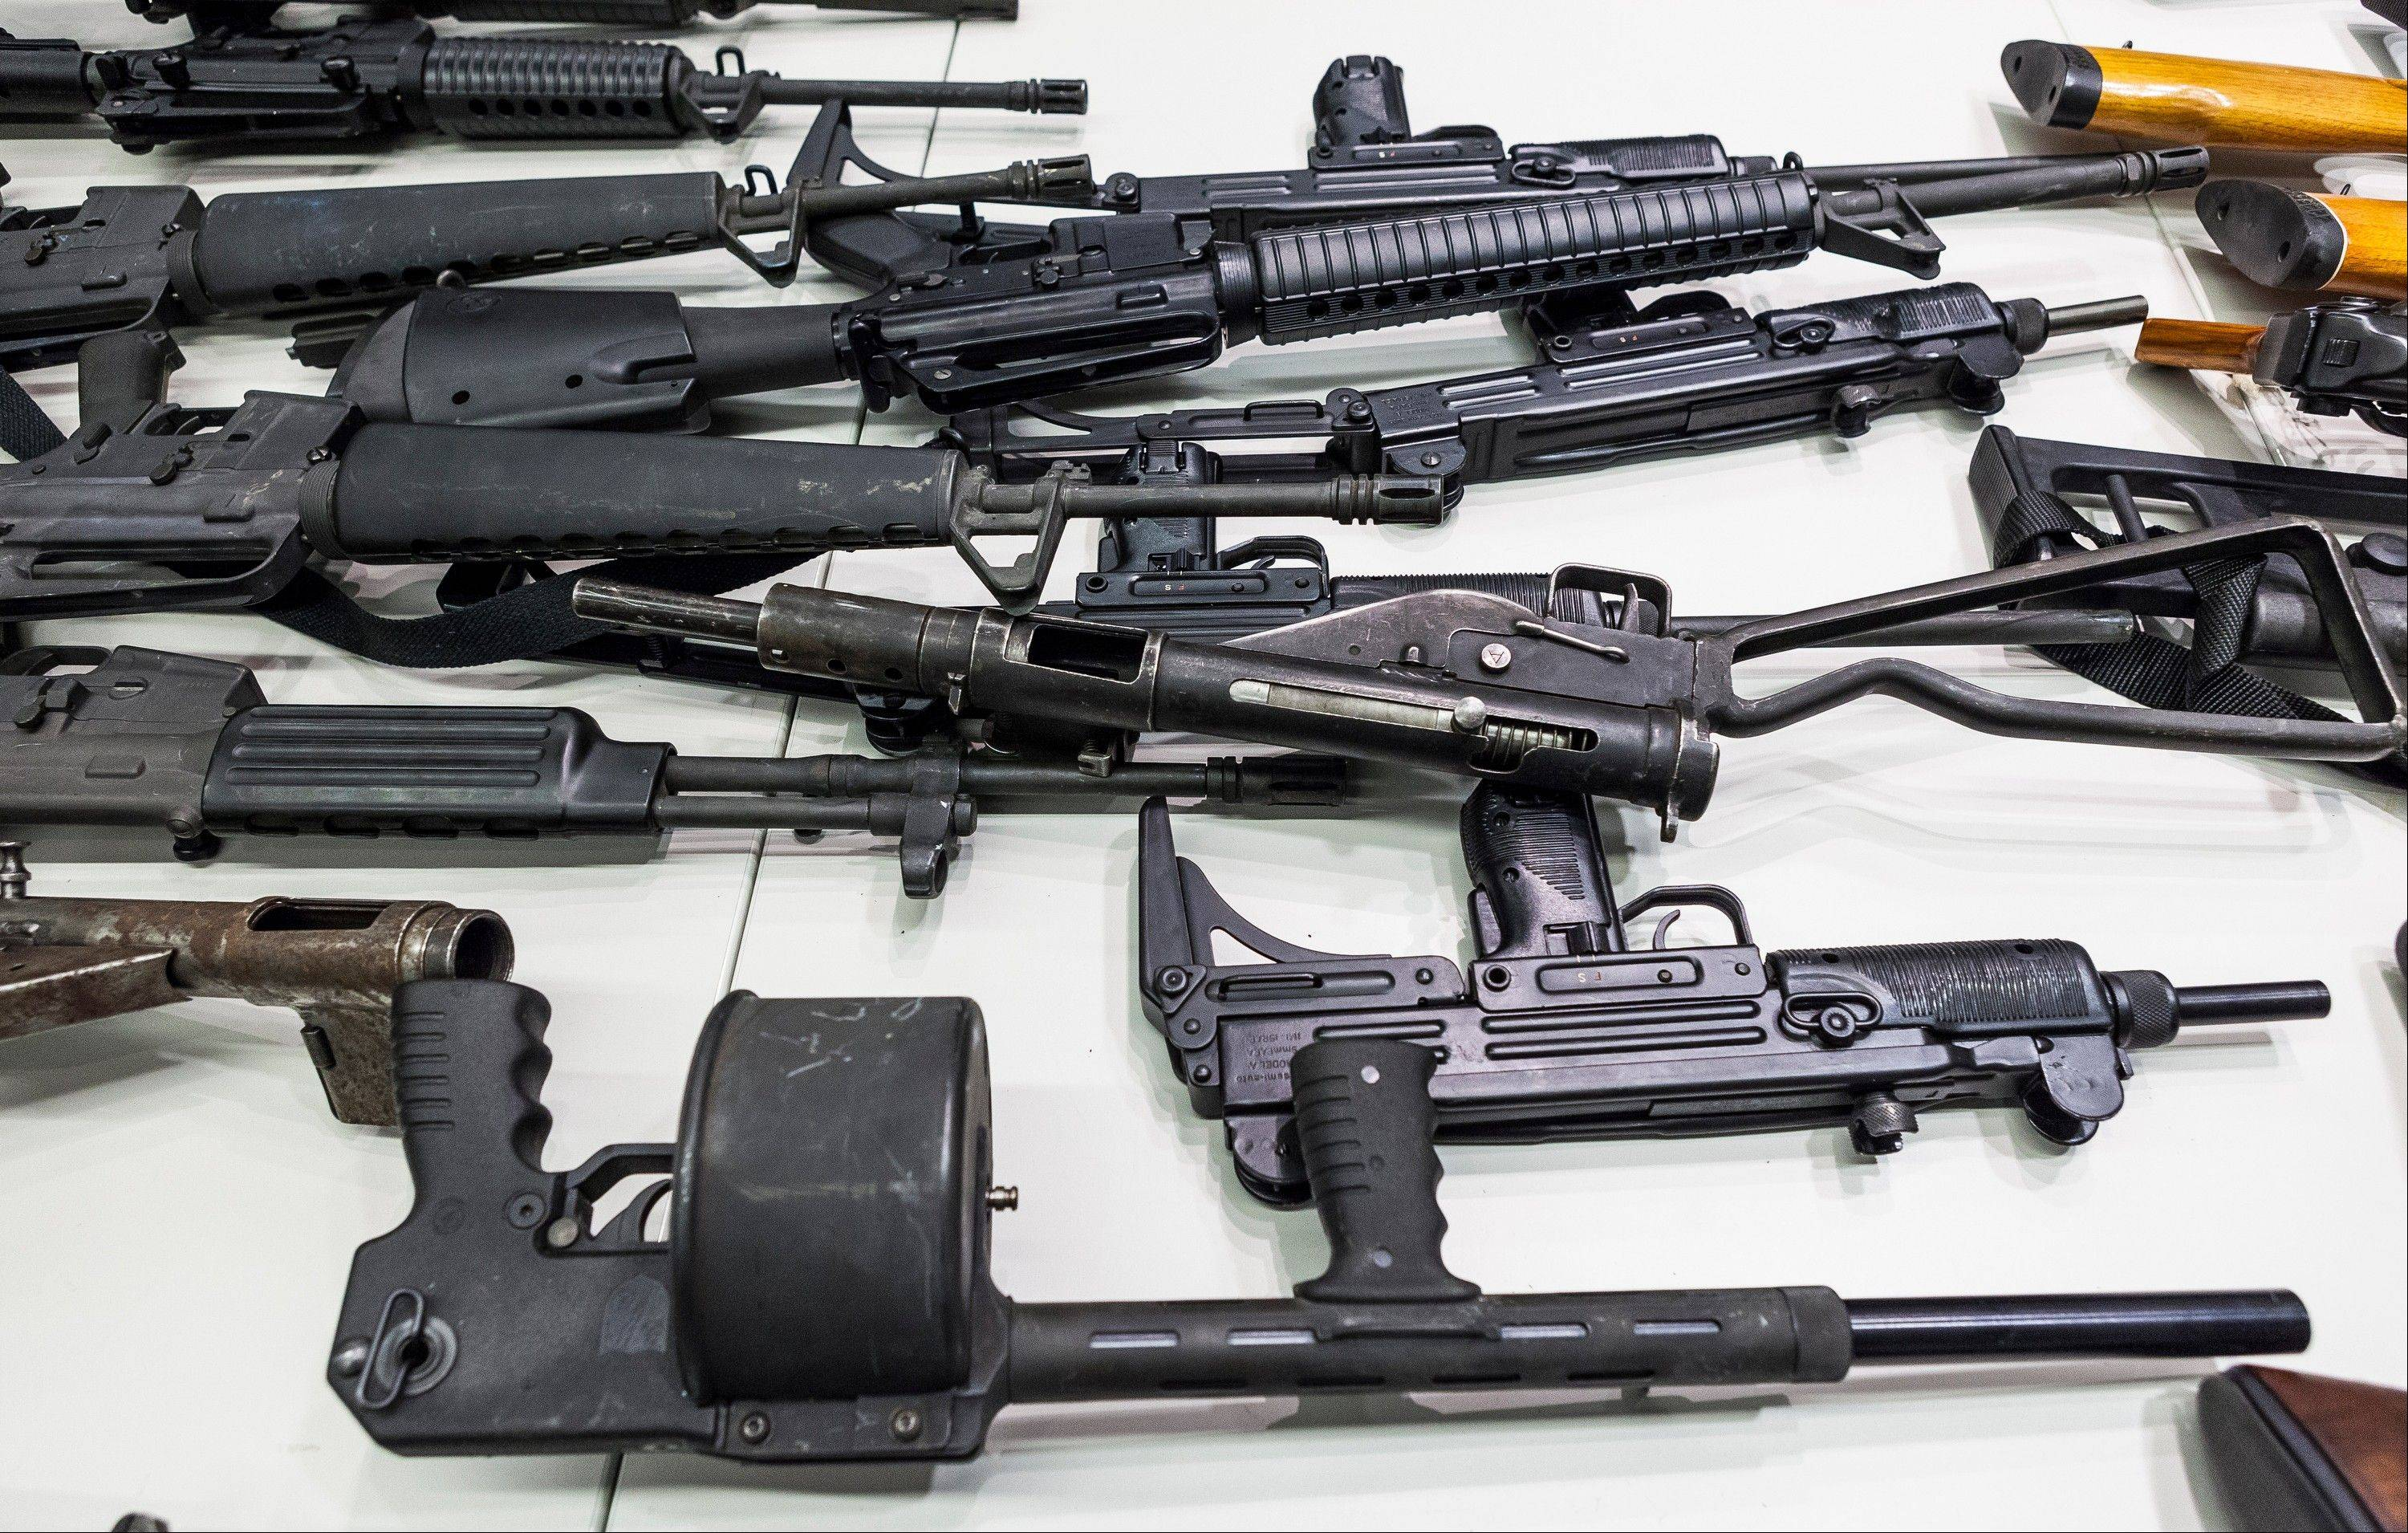 Editorial: Outlaw assault weapons in the suburbs